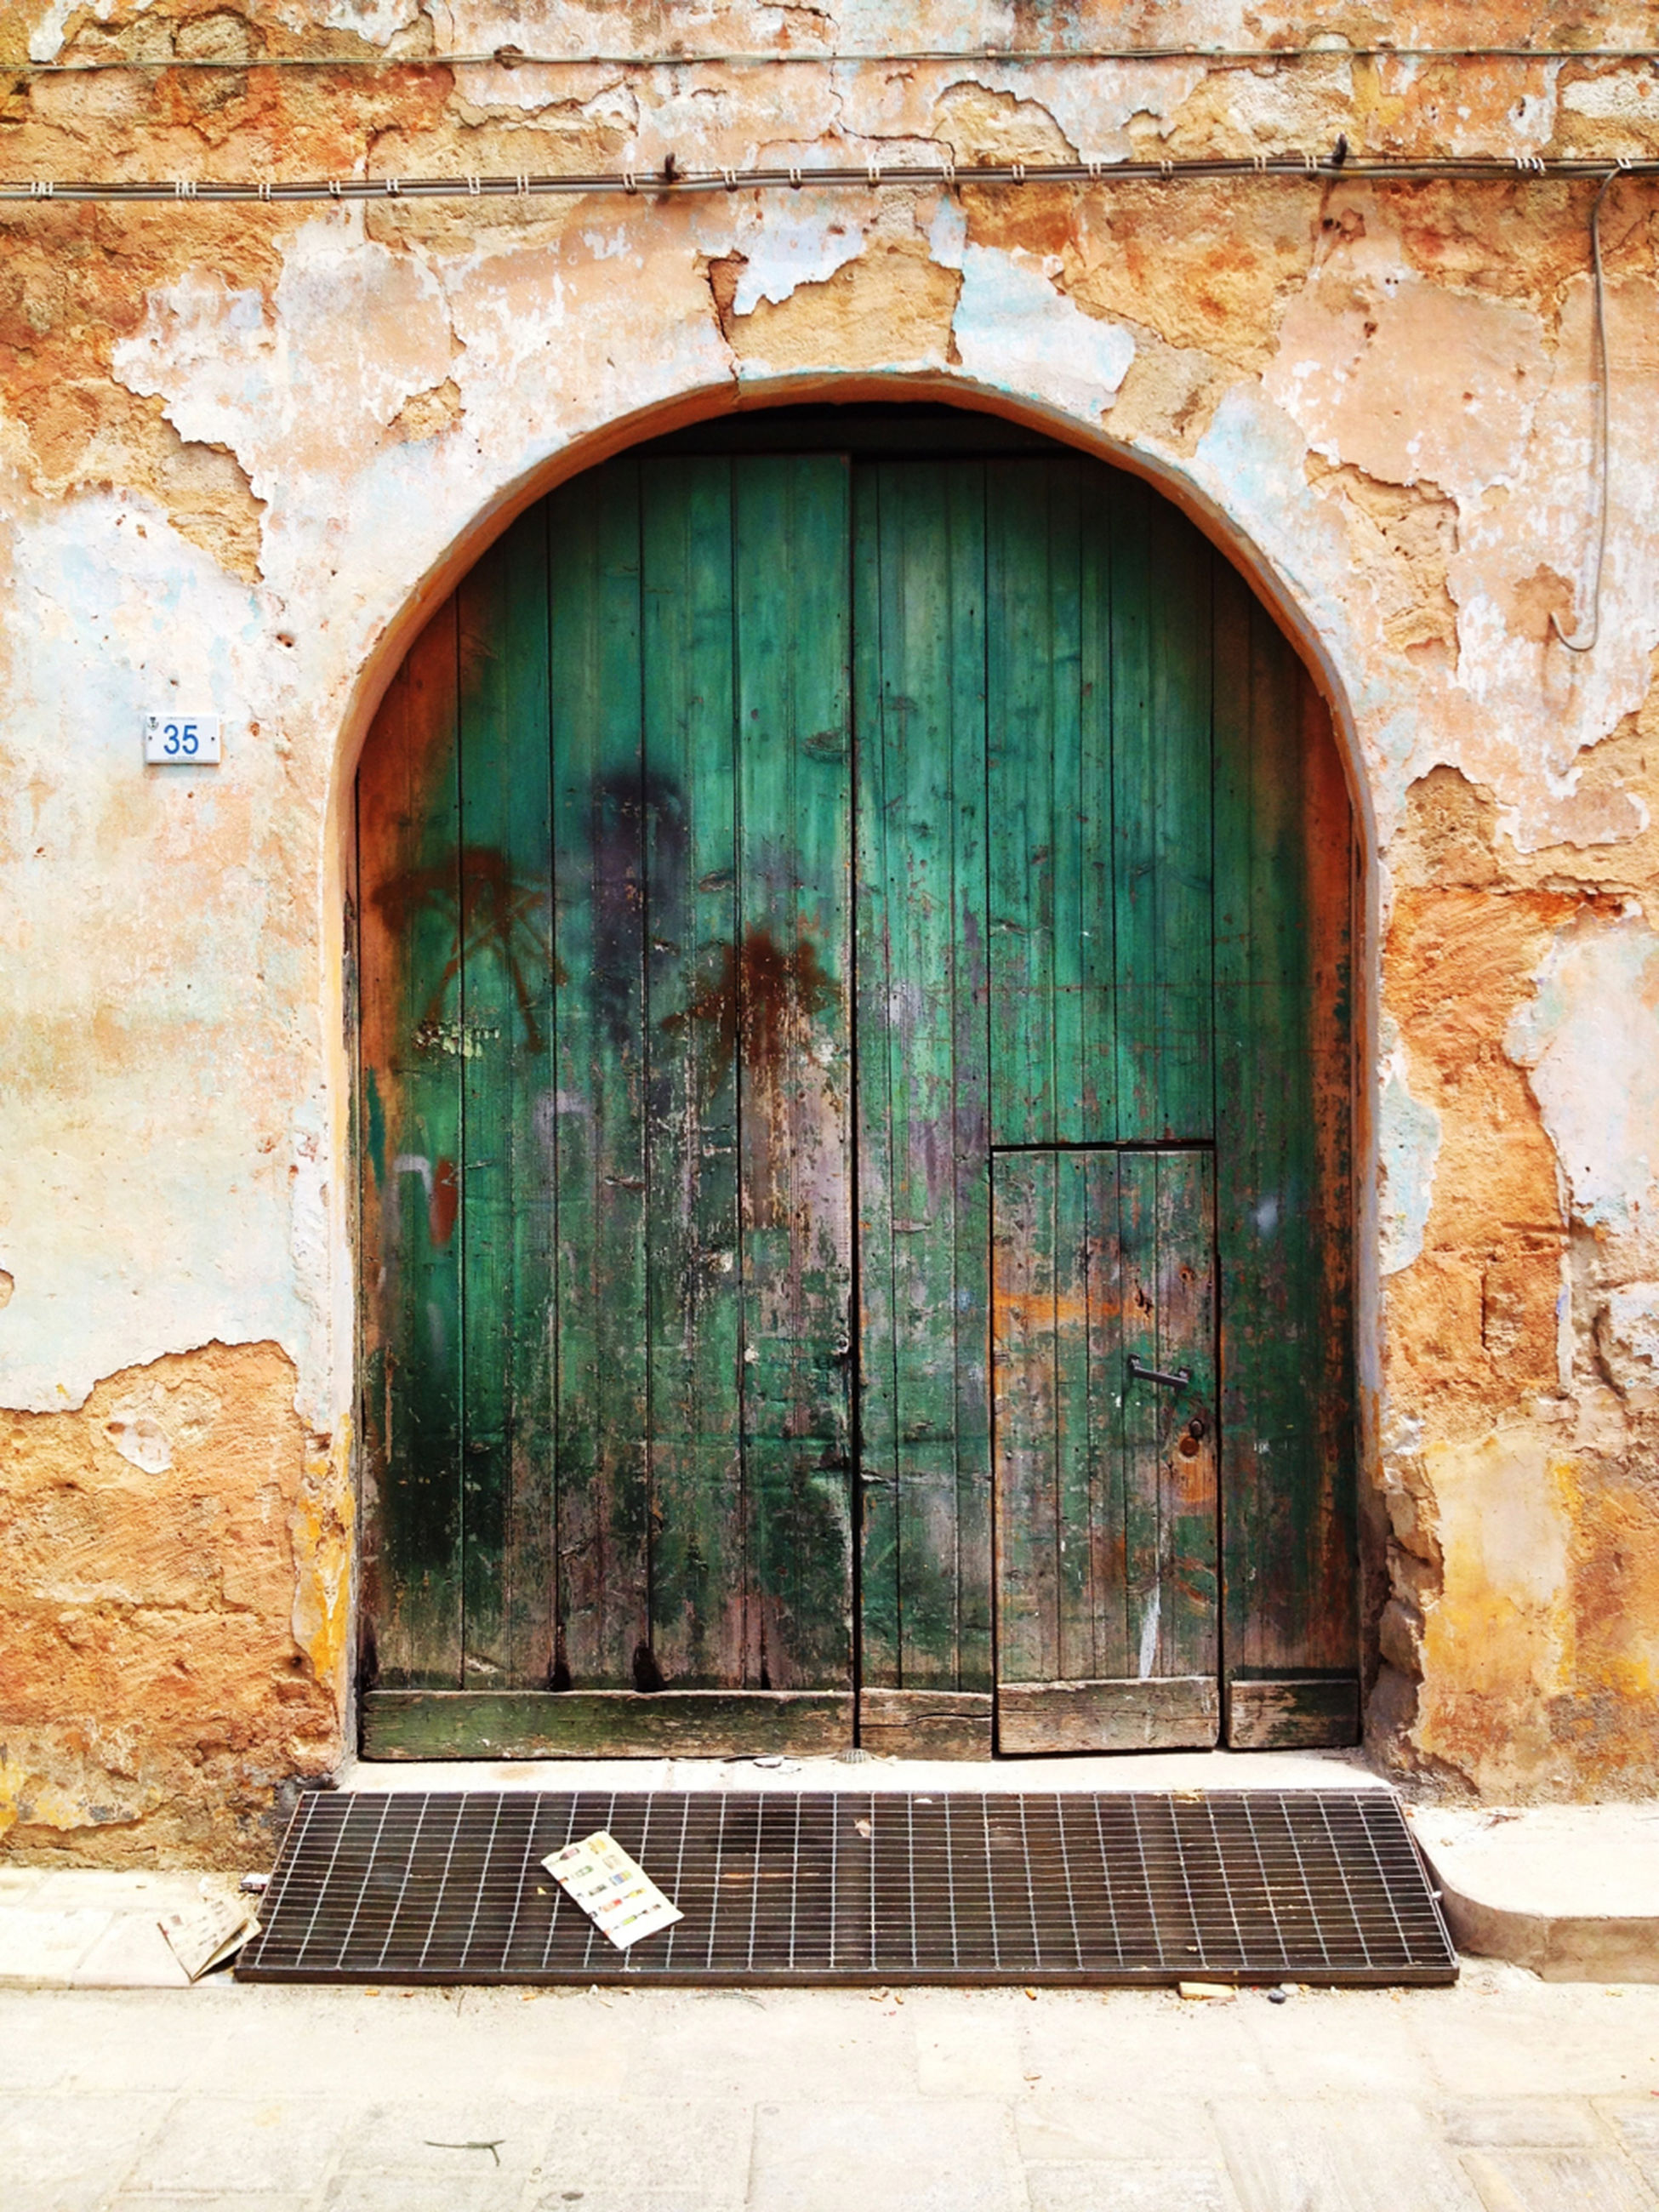 architecture, built structure, building exterior, door, closed, entrance, brick wall, window, house, arch, old, weathered, wall - building feature, safety, wall, protection, doorway, wood - material, closed door, stone wall